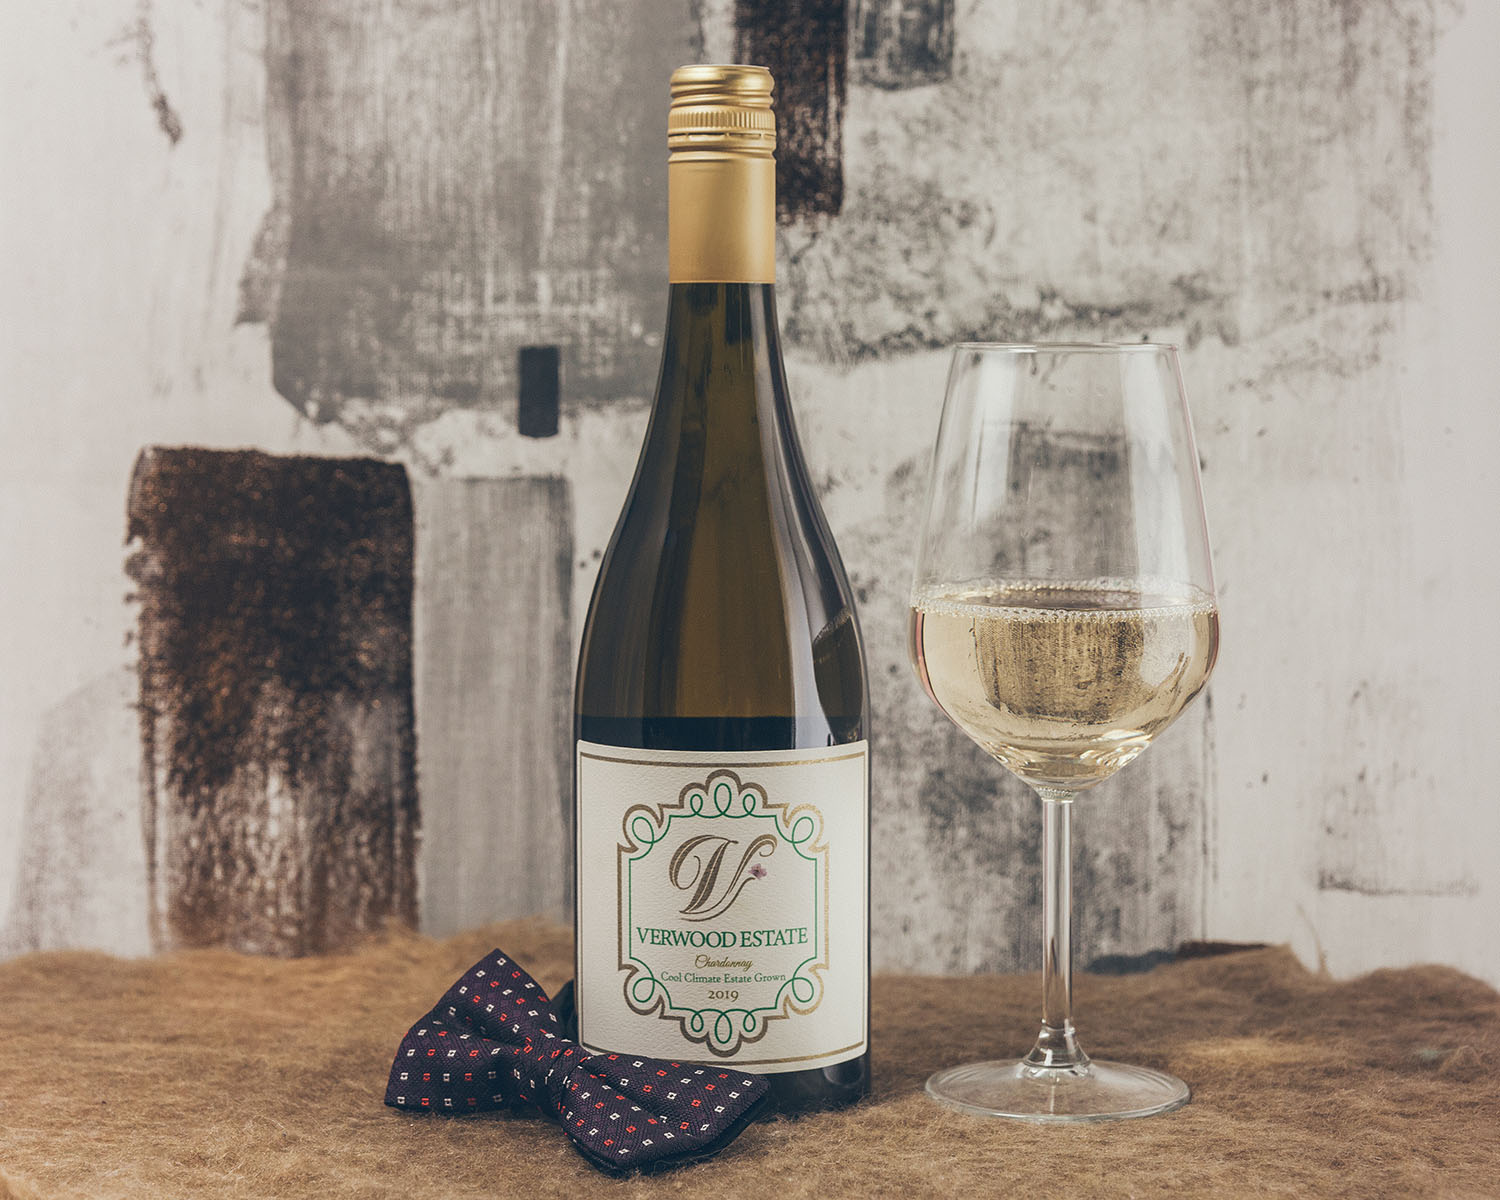 Verwood Estate Wines Chardonnay in a glass with a bow tie for Father's Day